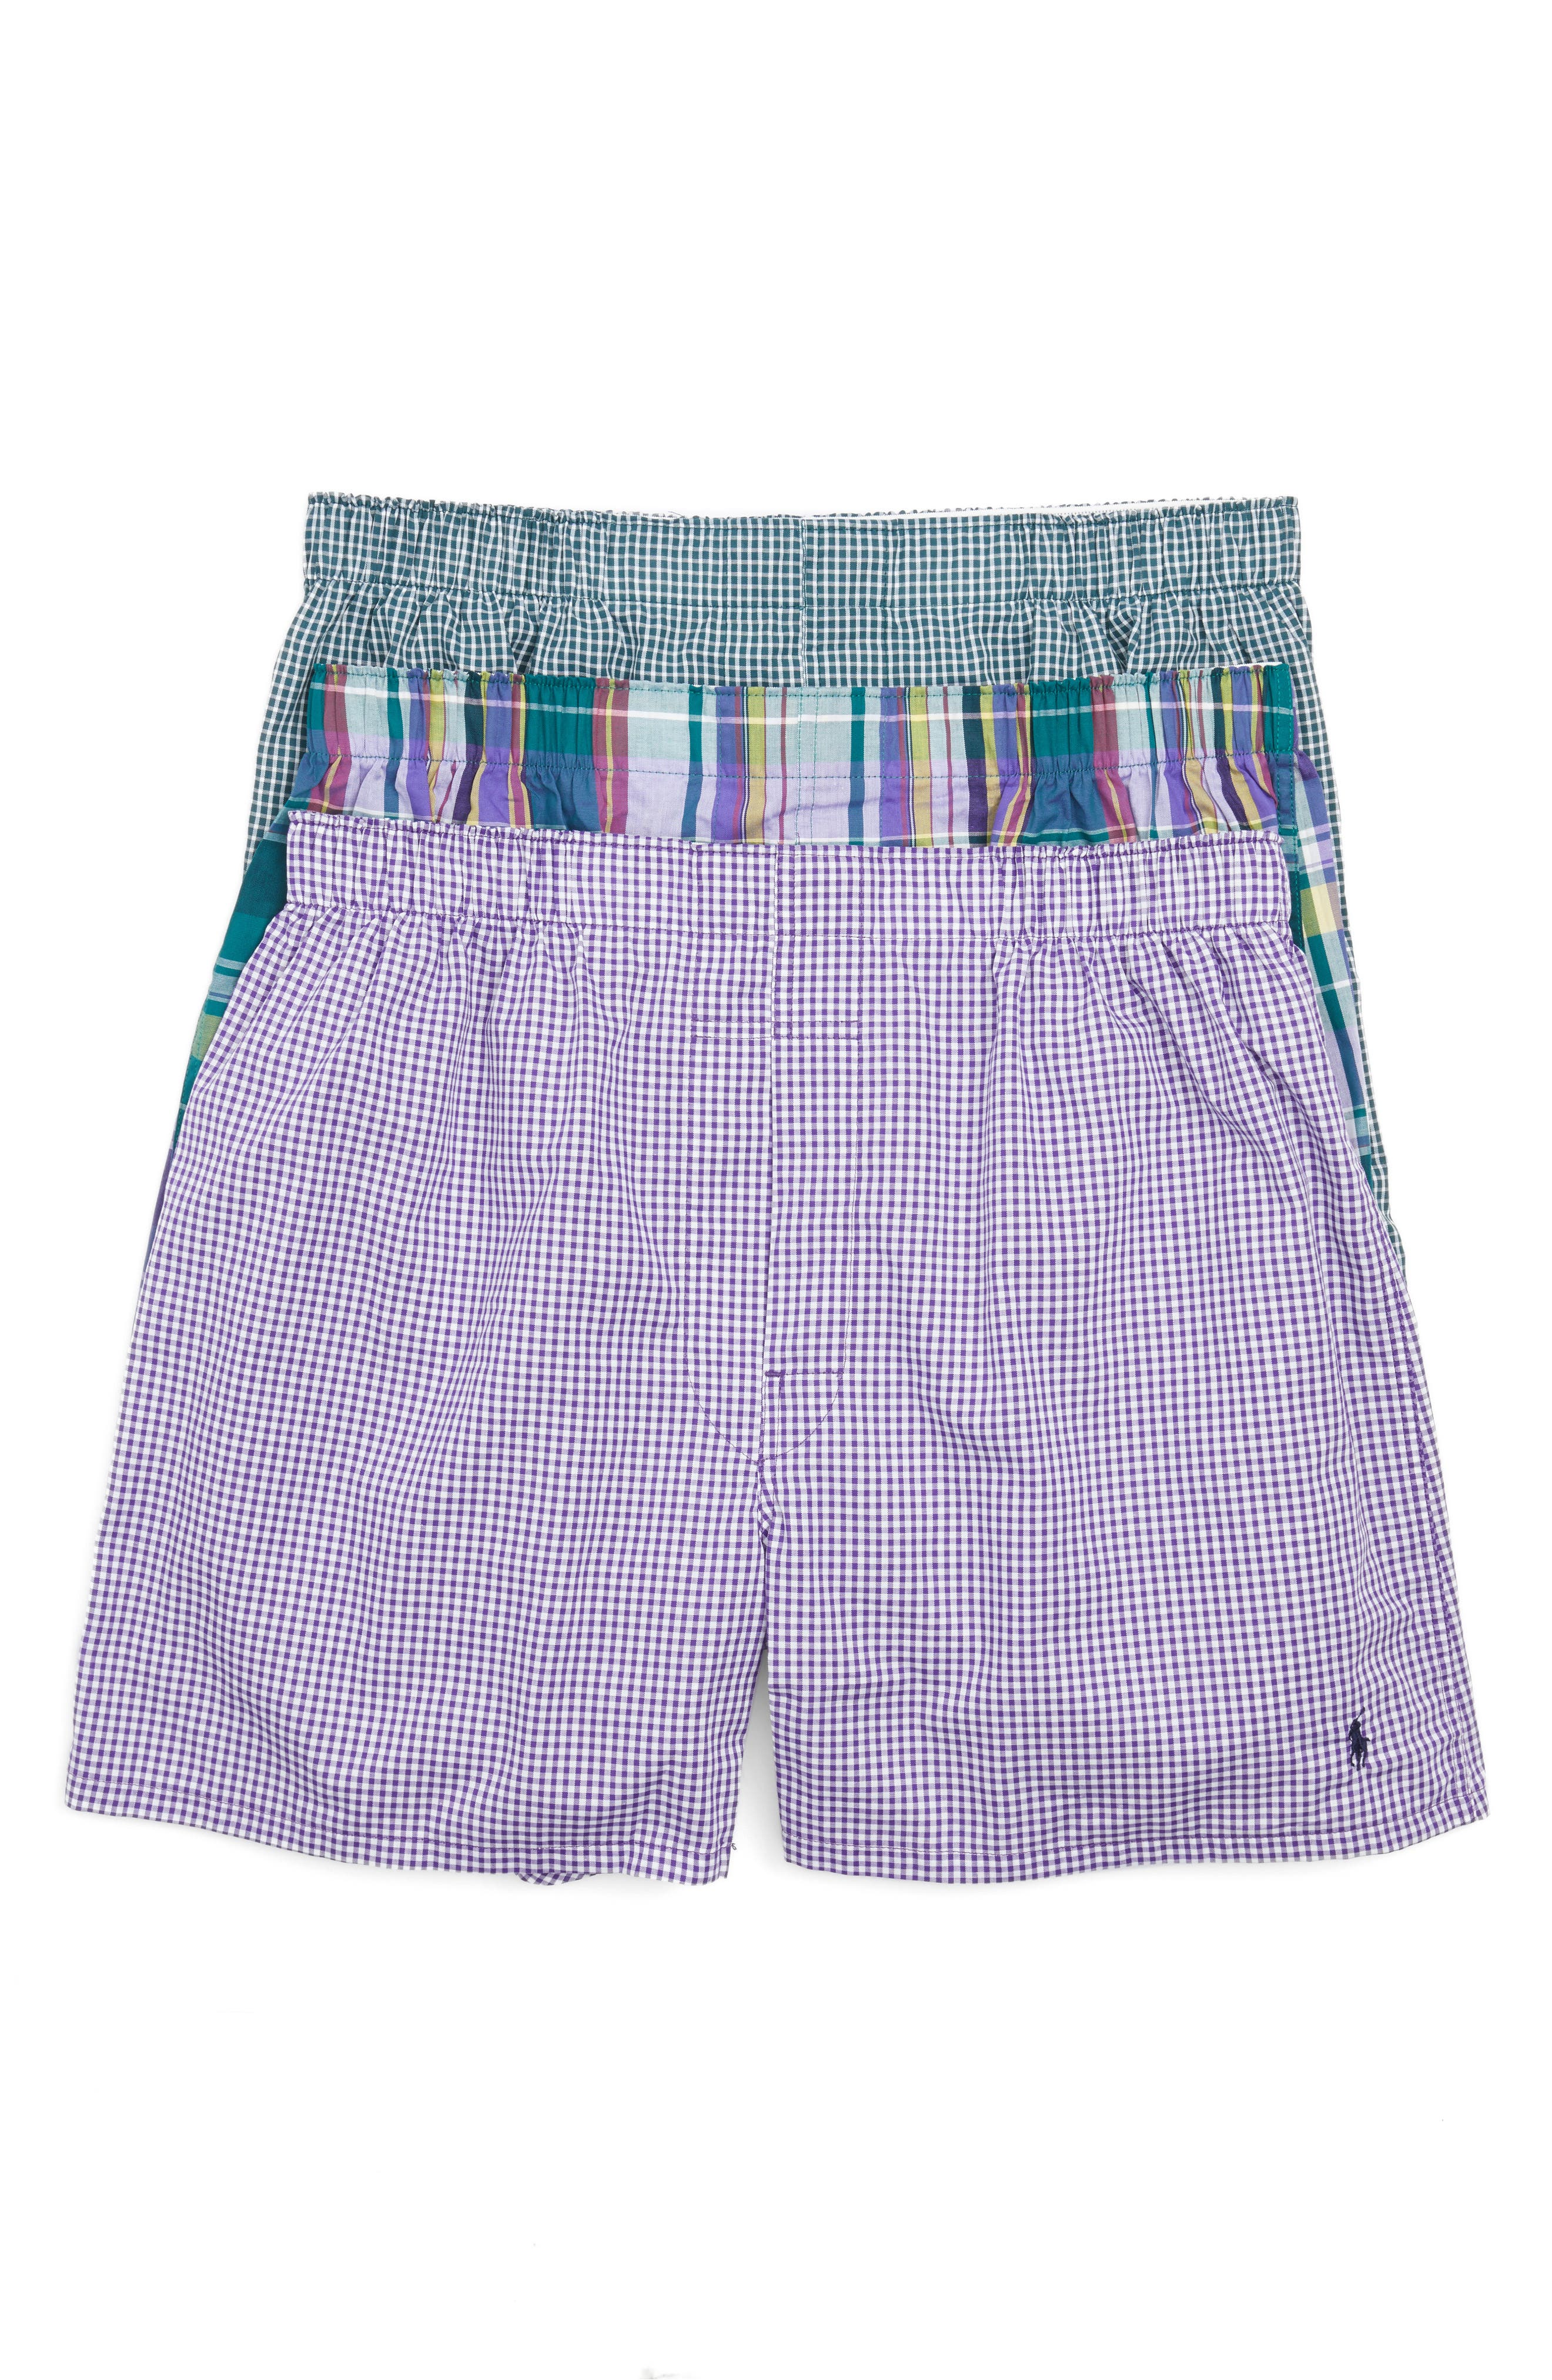 Polo Ralph Lauren Assorted 3-Pack Woven Cotton Boxers